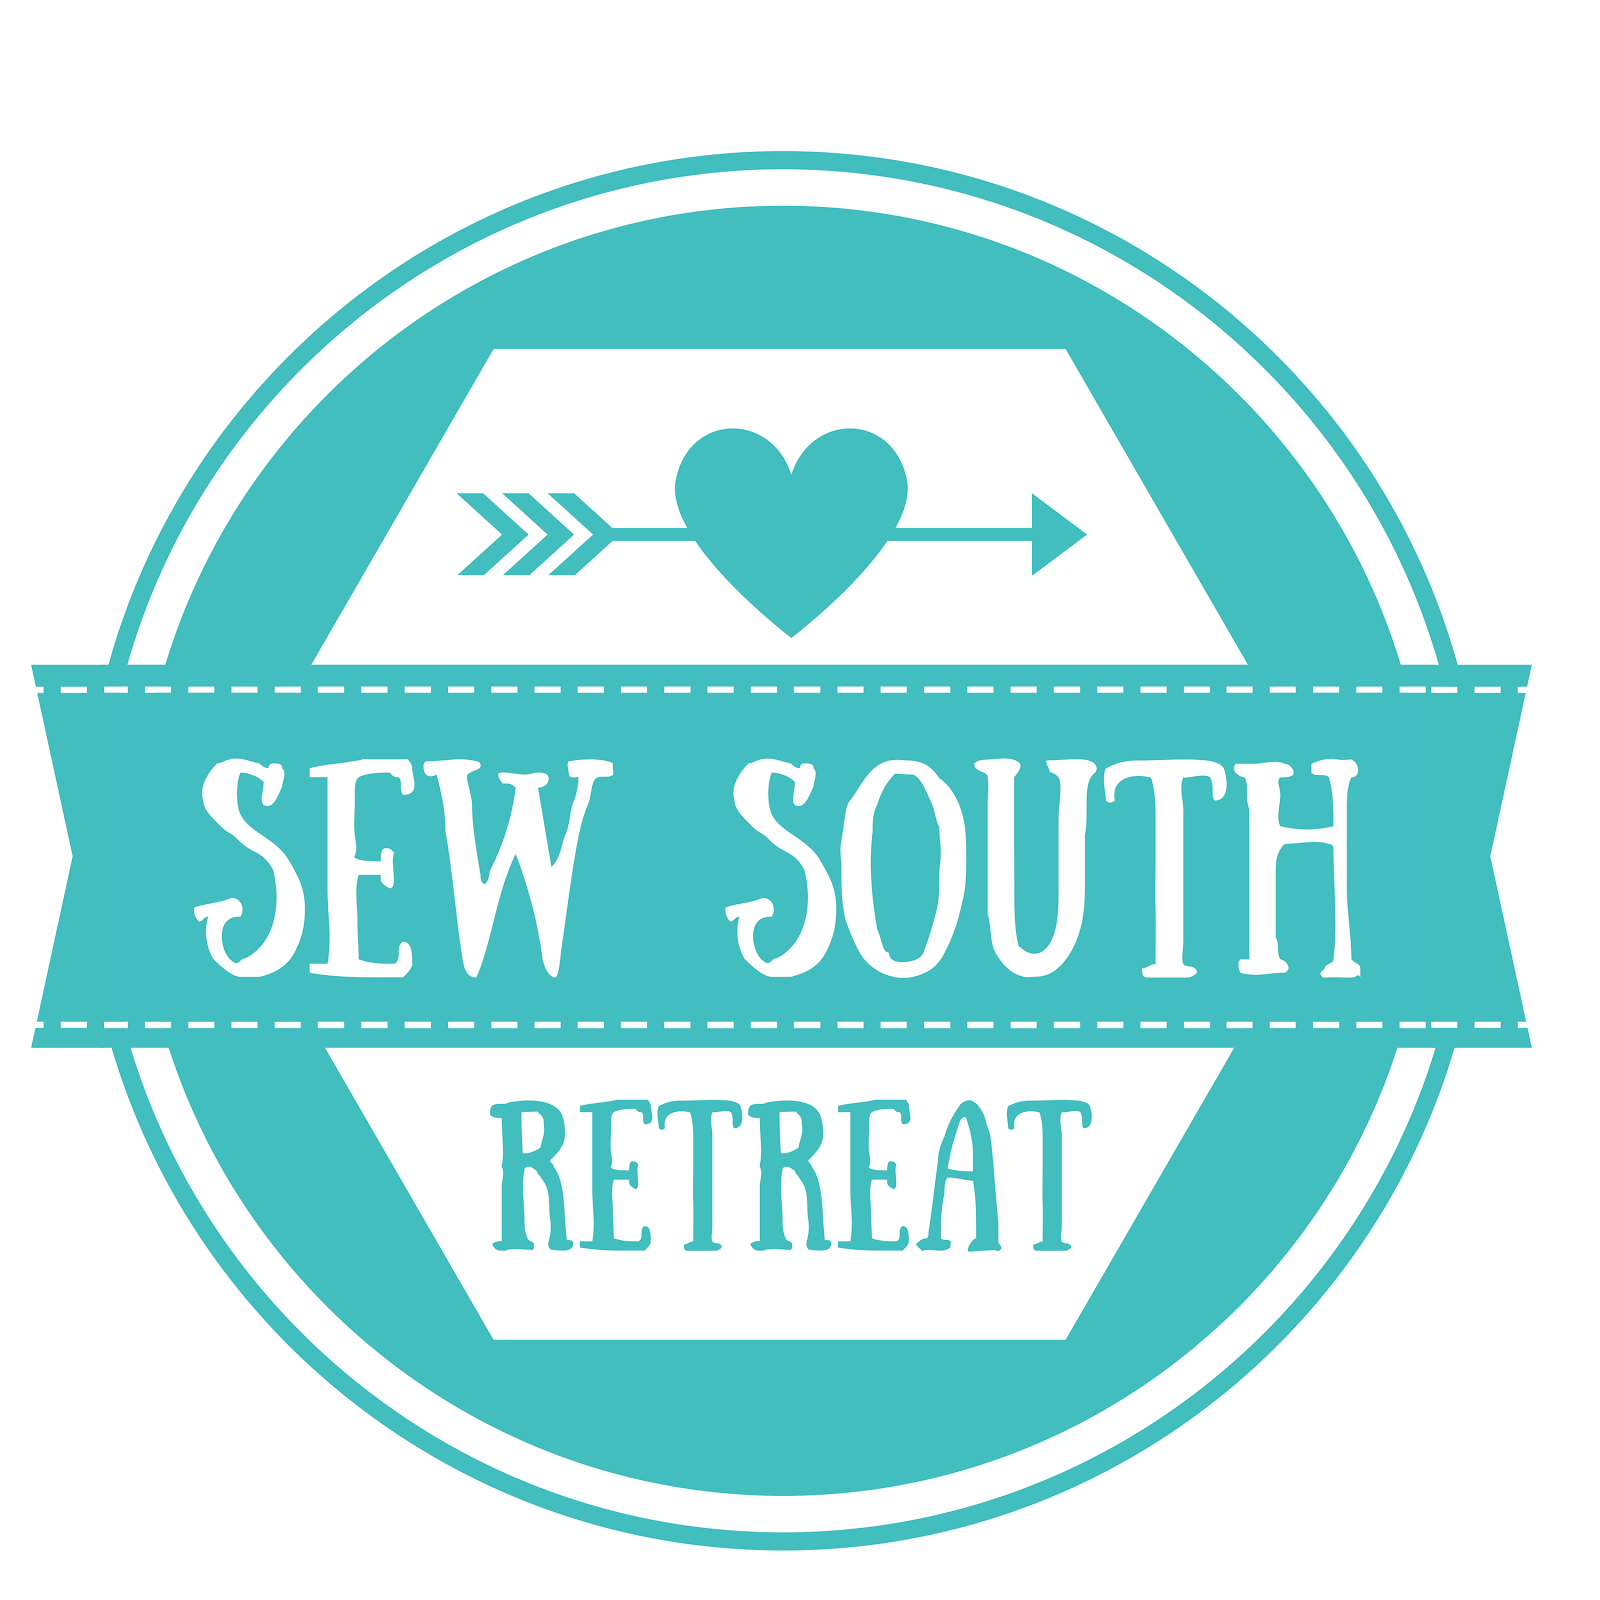 Sew South Retreat